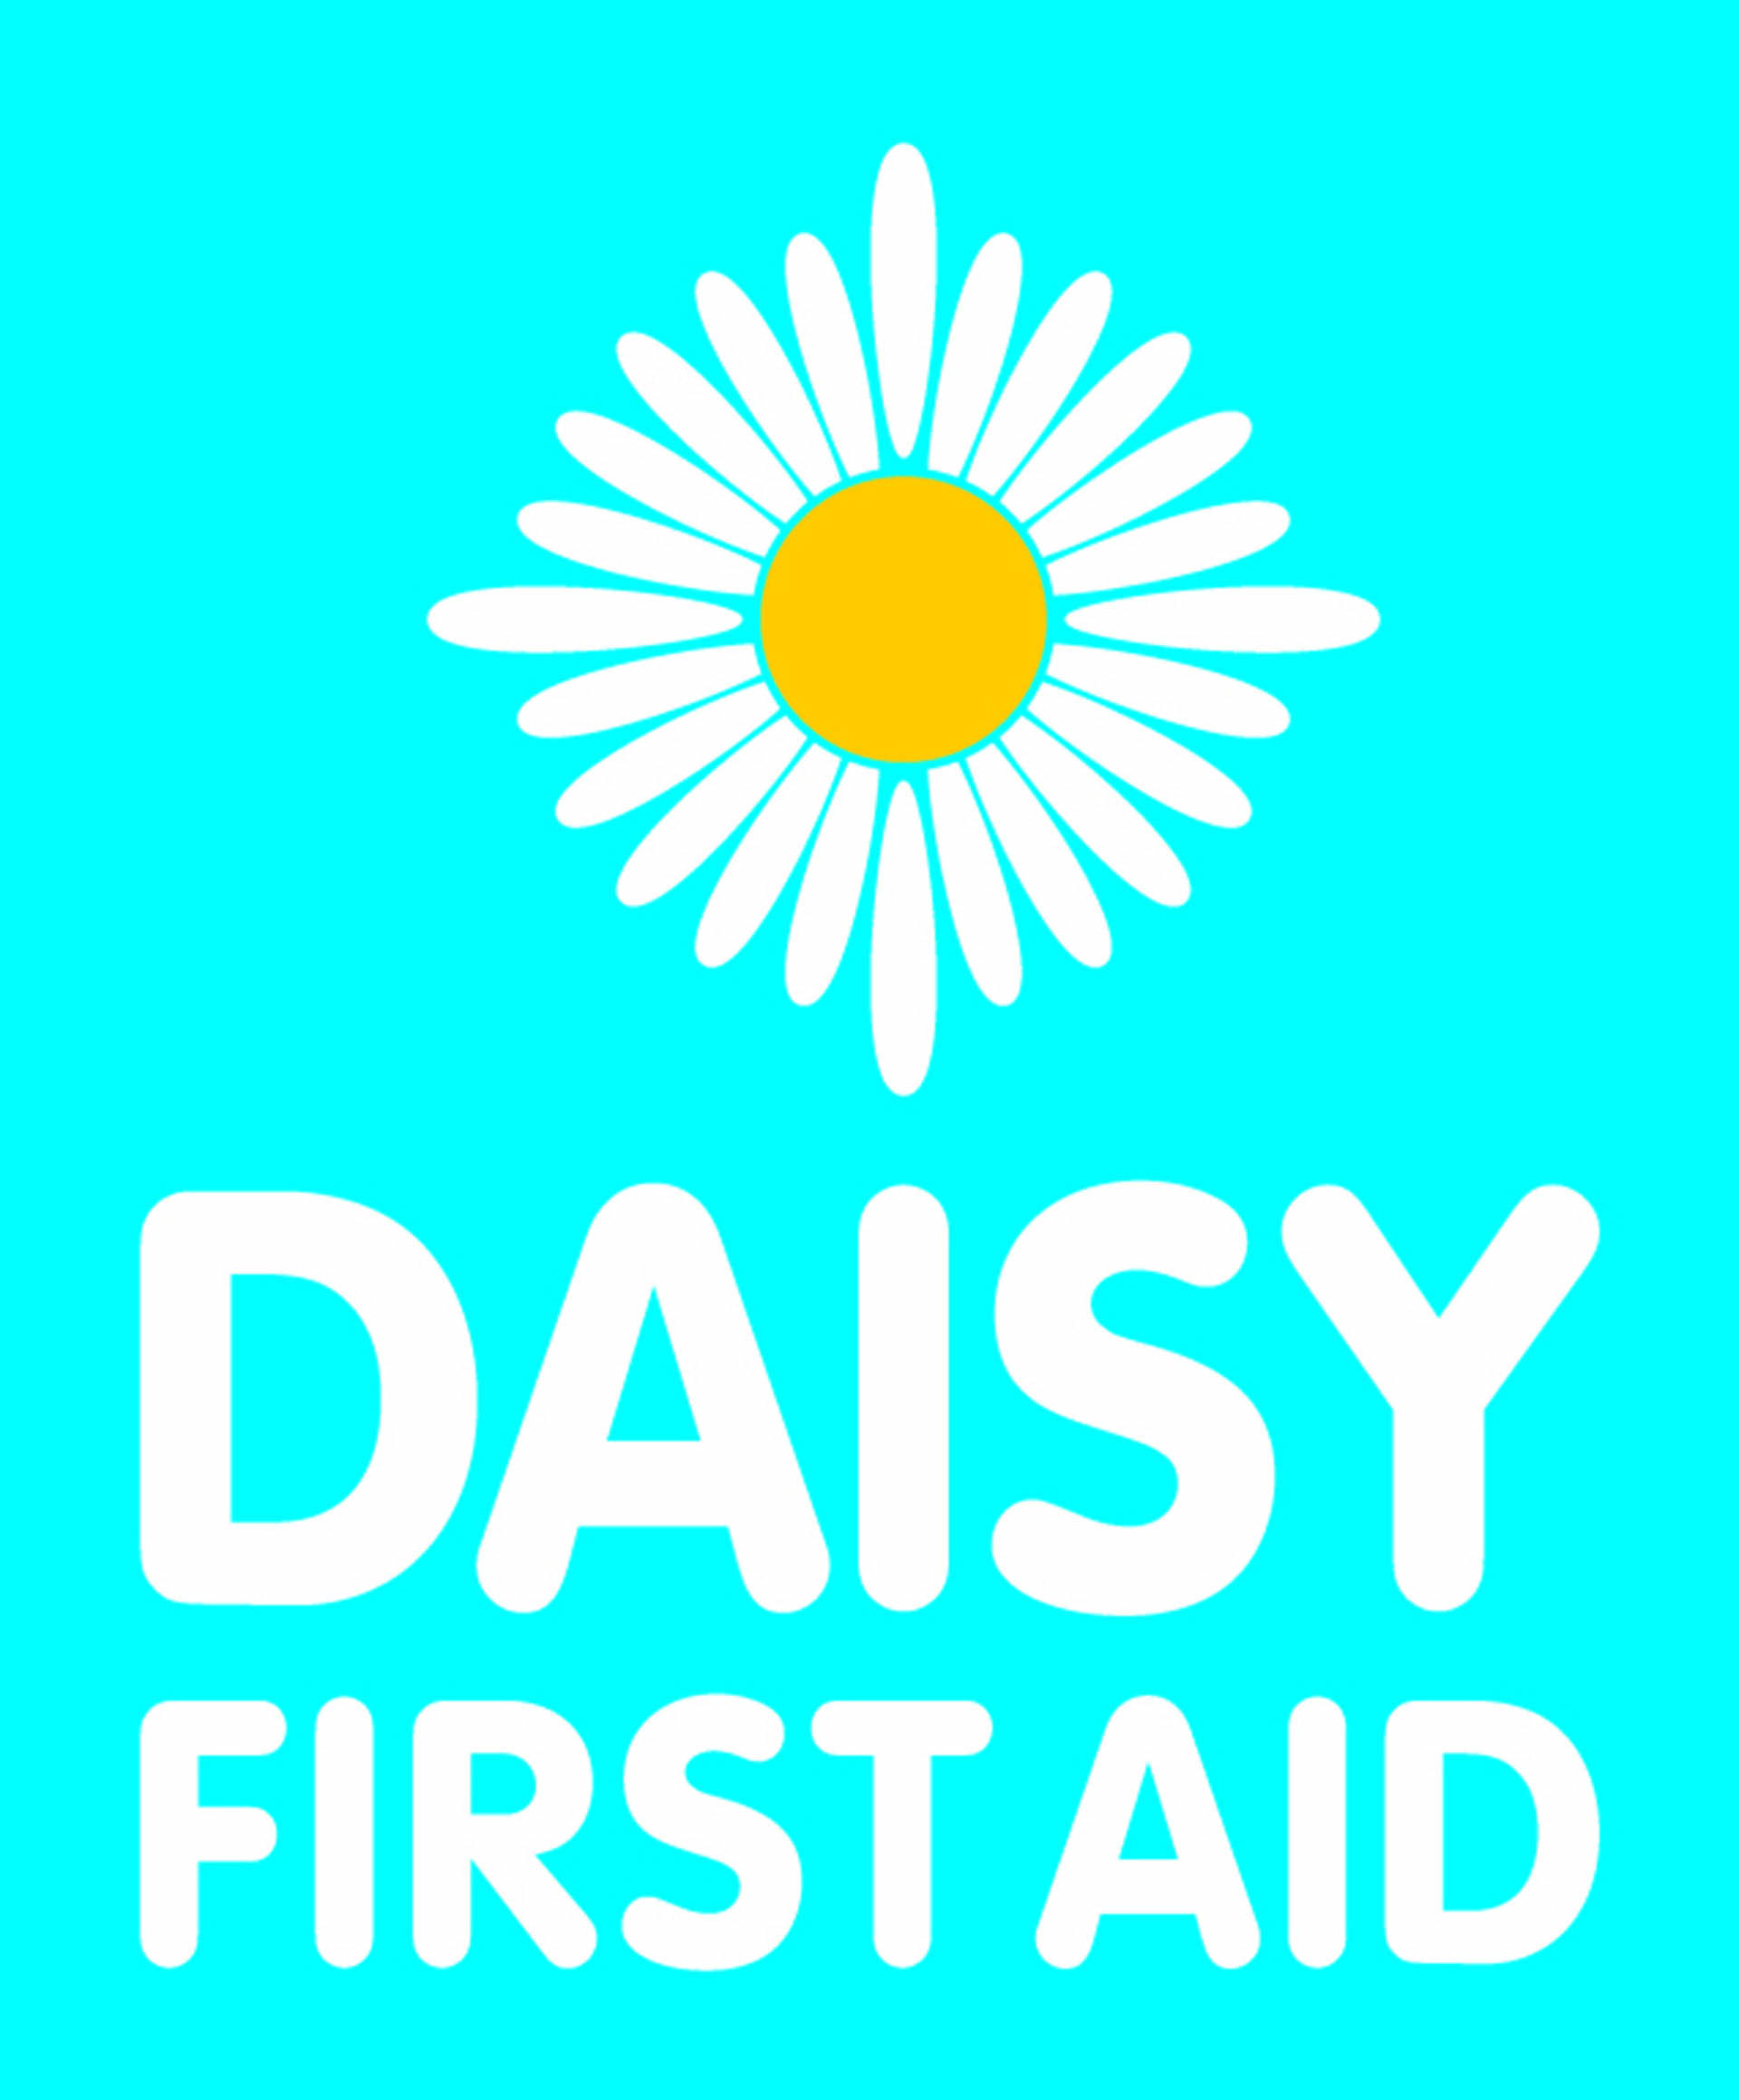 Daisy First Aid Guildford & Reigate's logo